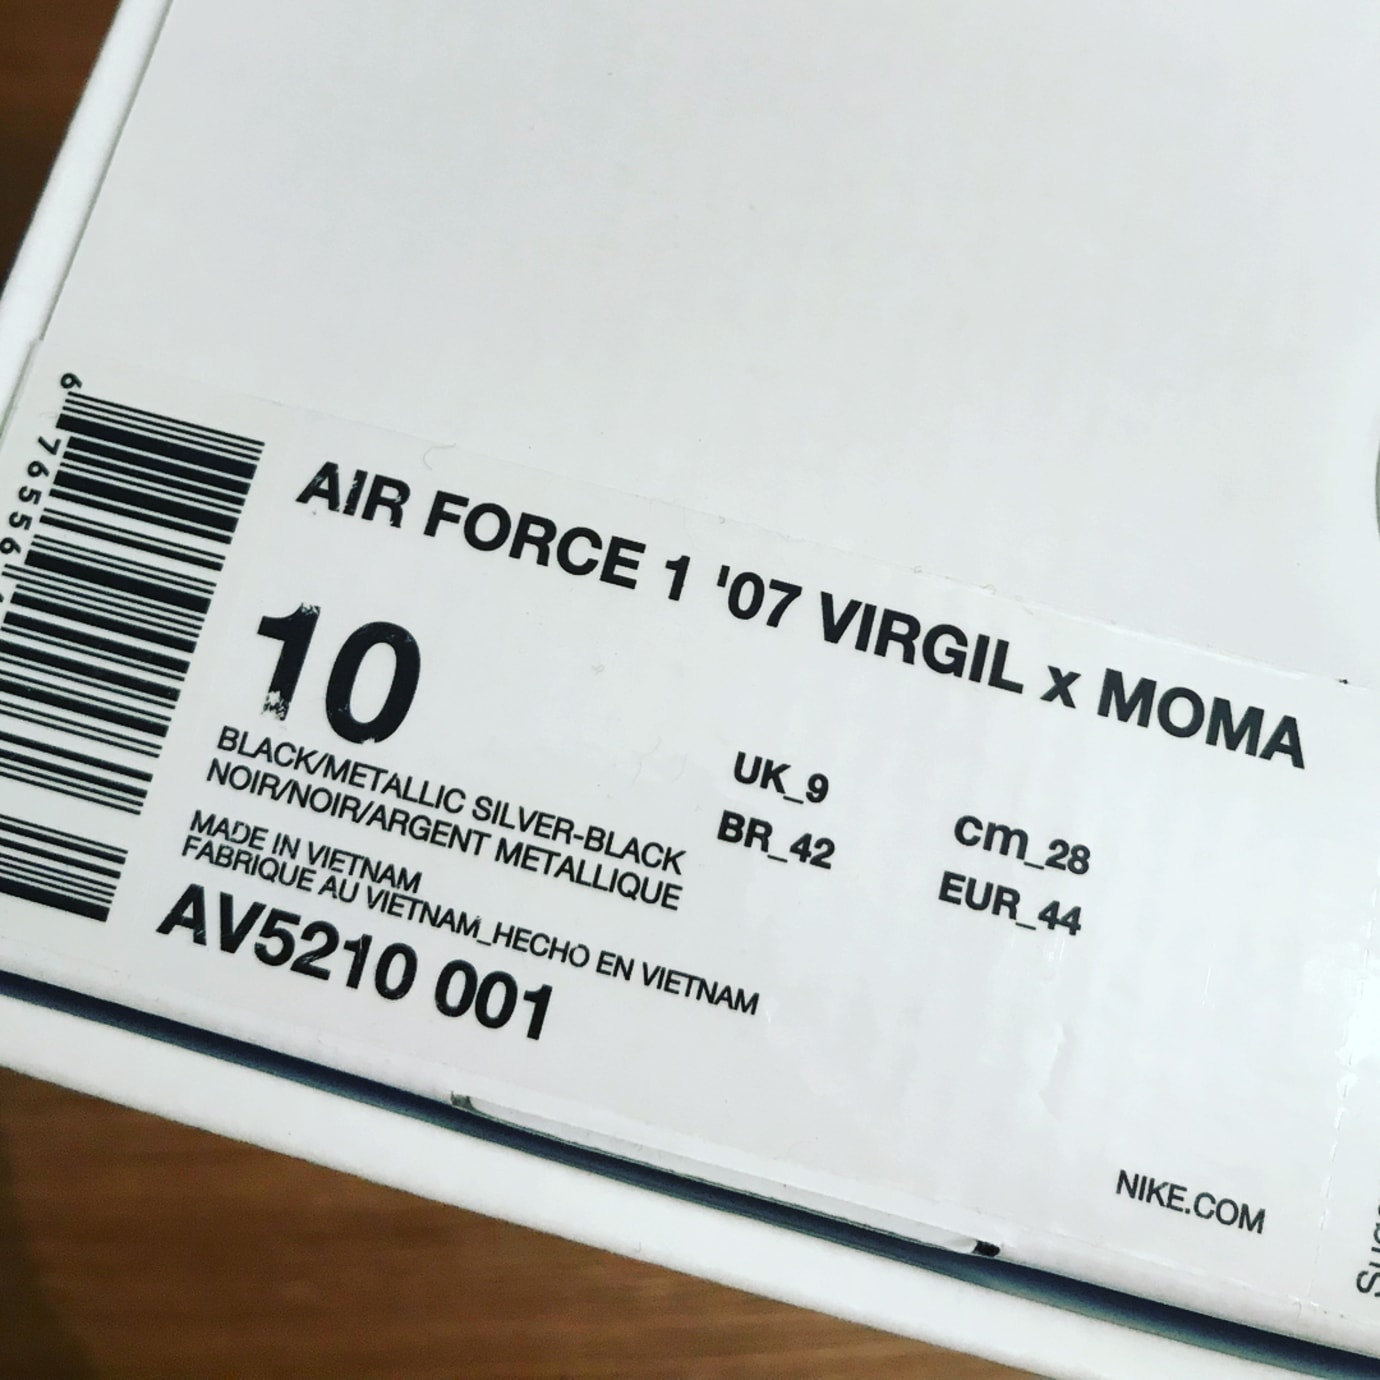 Virgil Abloh Off-white x Nike Air Force 1 Low MoMa AV5210-001 Box